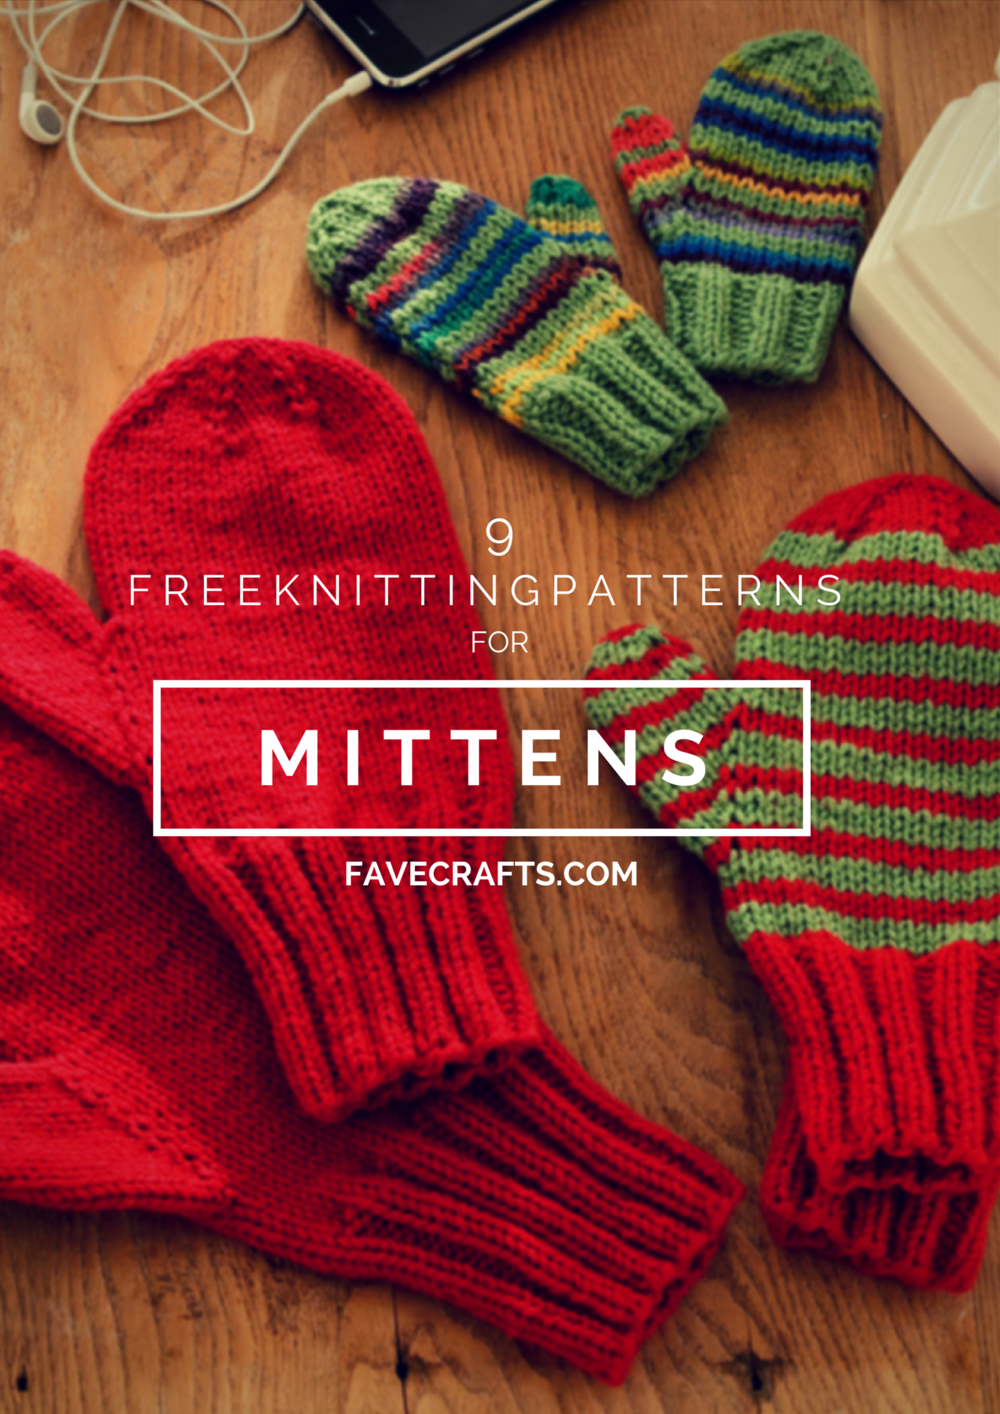 16 free knitting patterns for mittens mittens knit patterns and 16 free knitting patterns for mittens bankloansurffo Choice Image